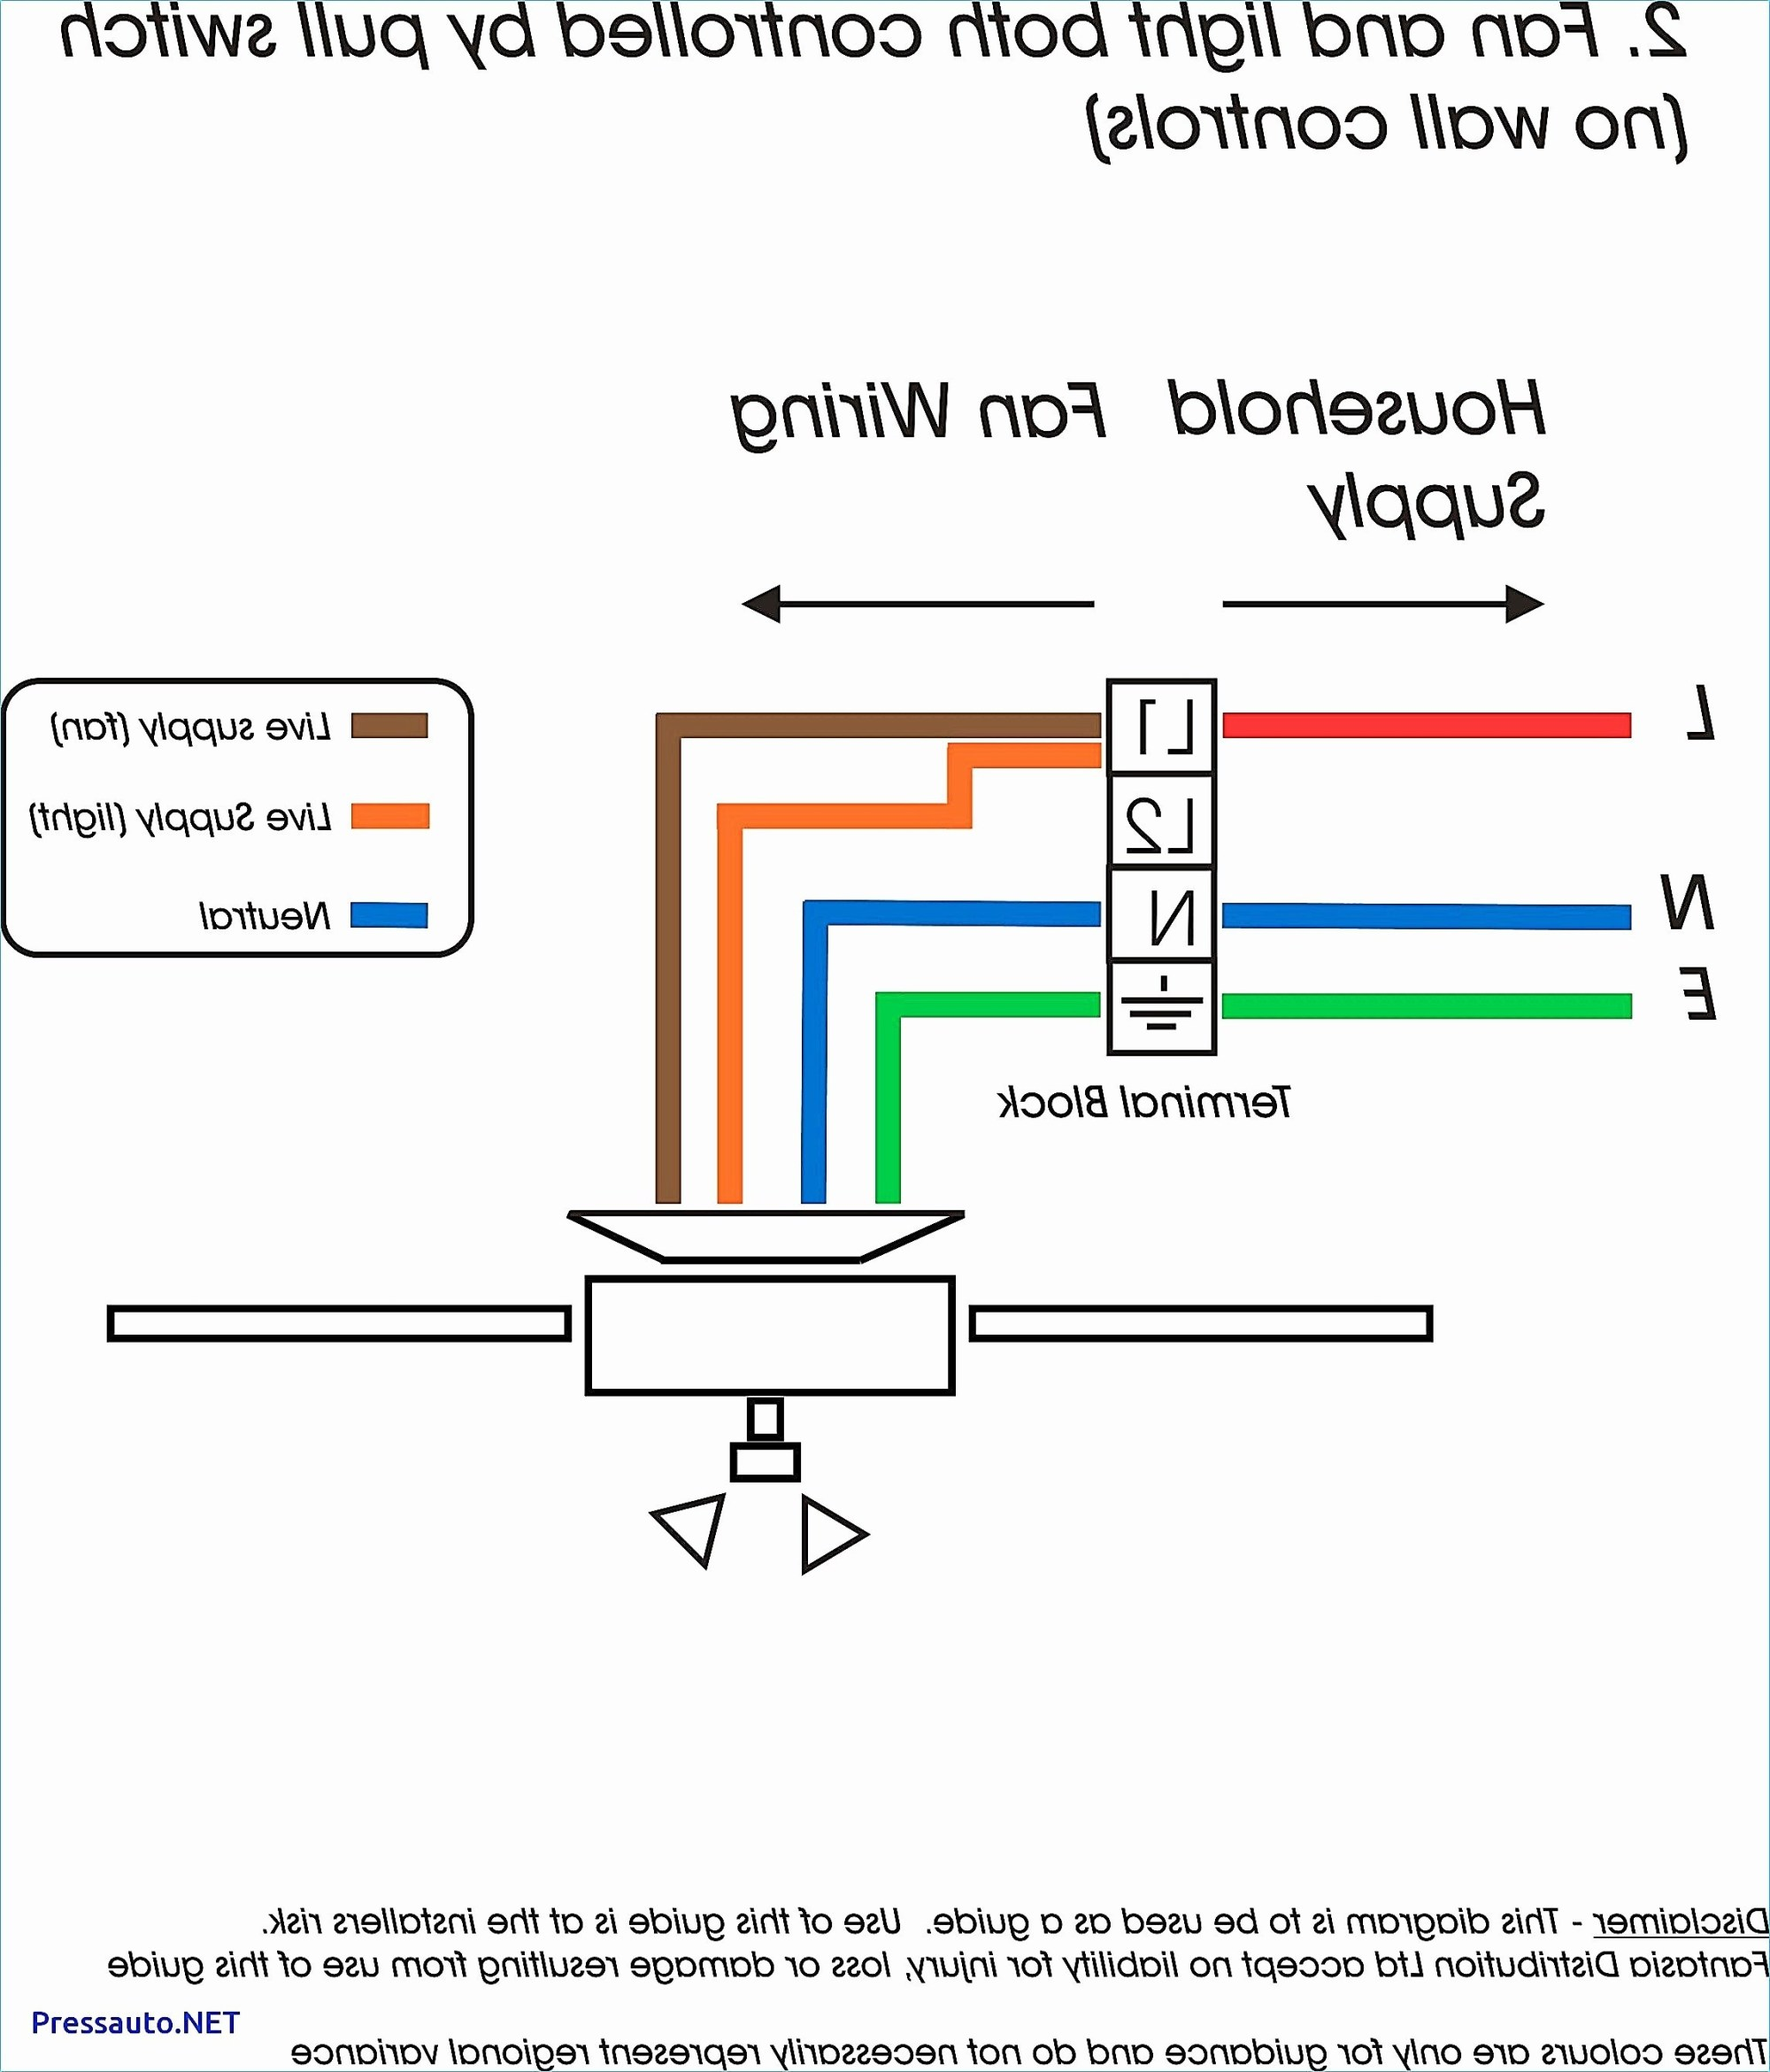 hight resolution of heater wiring diagram wiring library wiring 2 baseboard heaters to 1 thermostat 240v baseboard heater wiring diagram